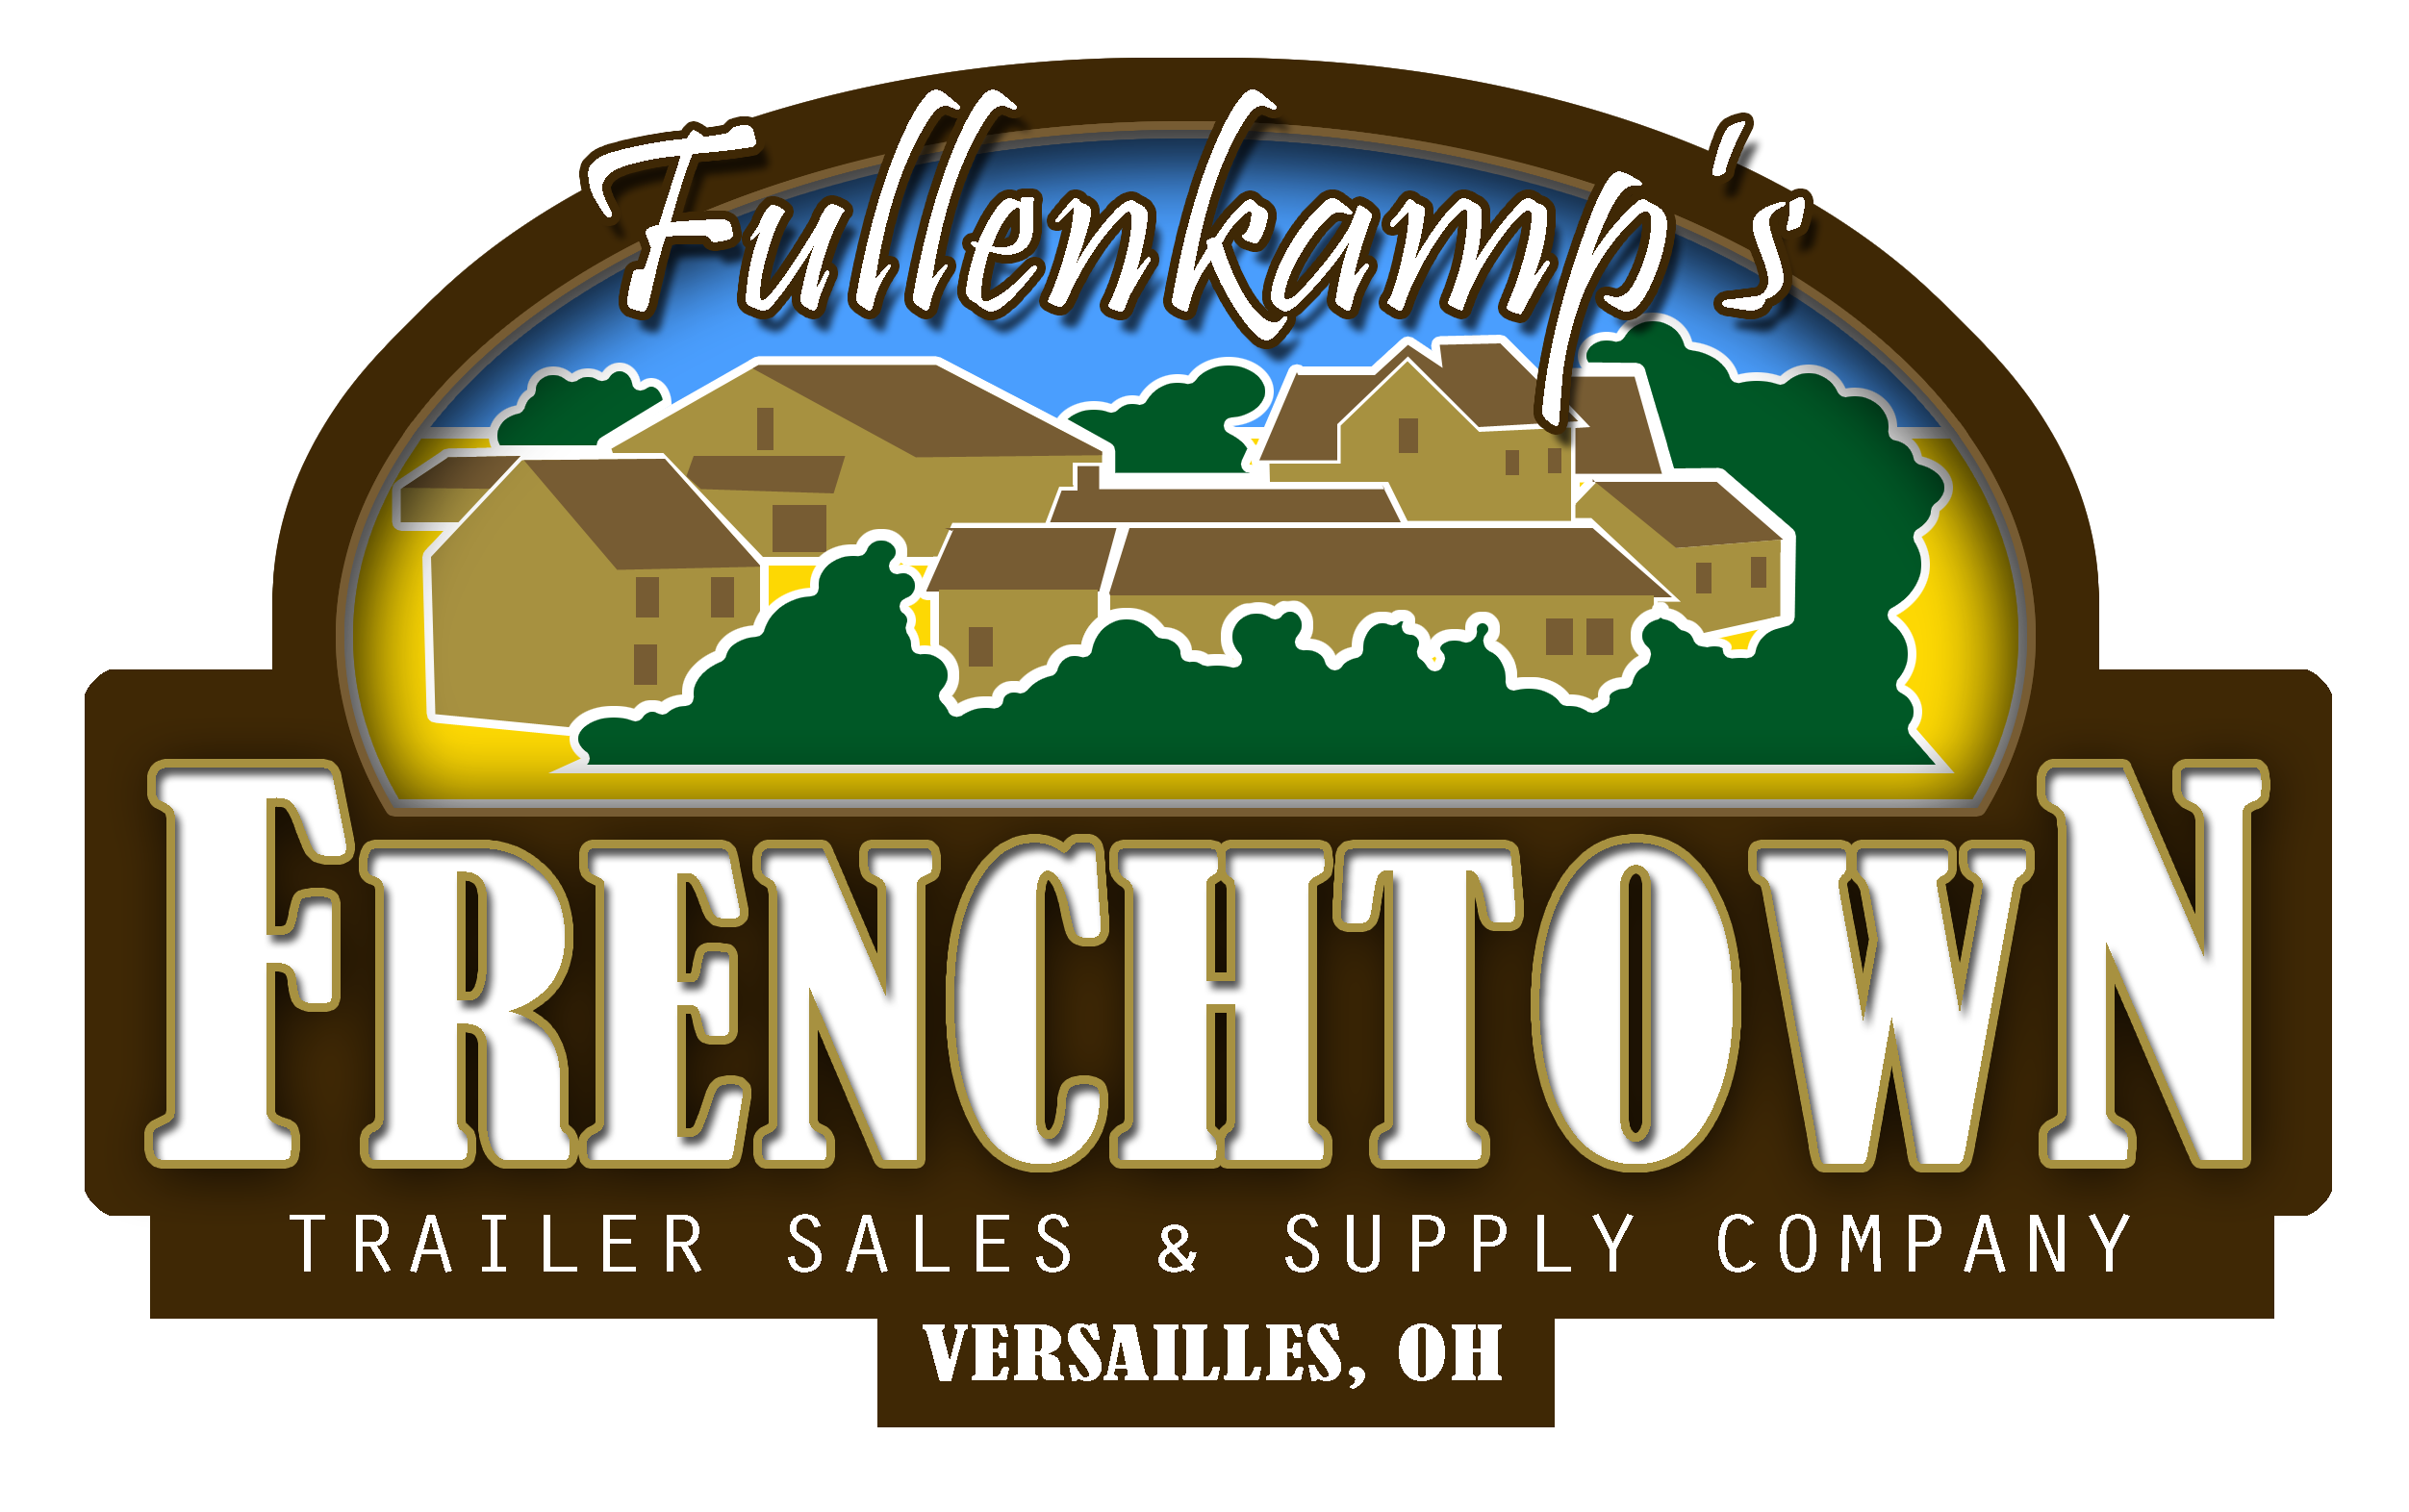 Frenchtown Trailer Sales & Supply Company